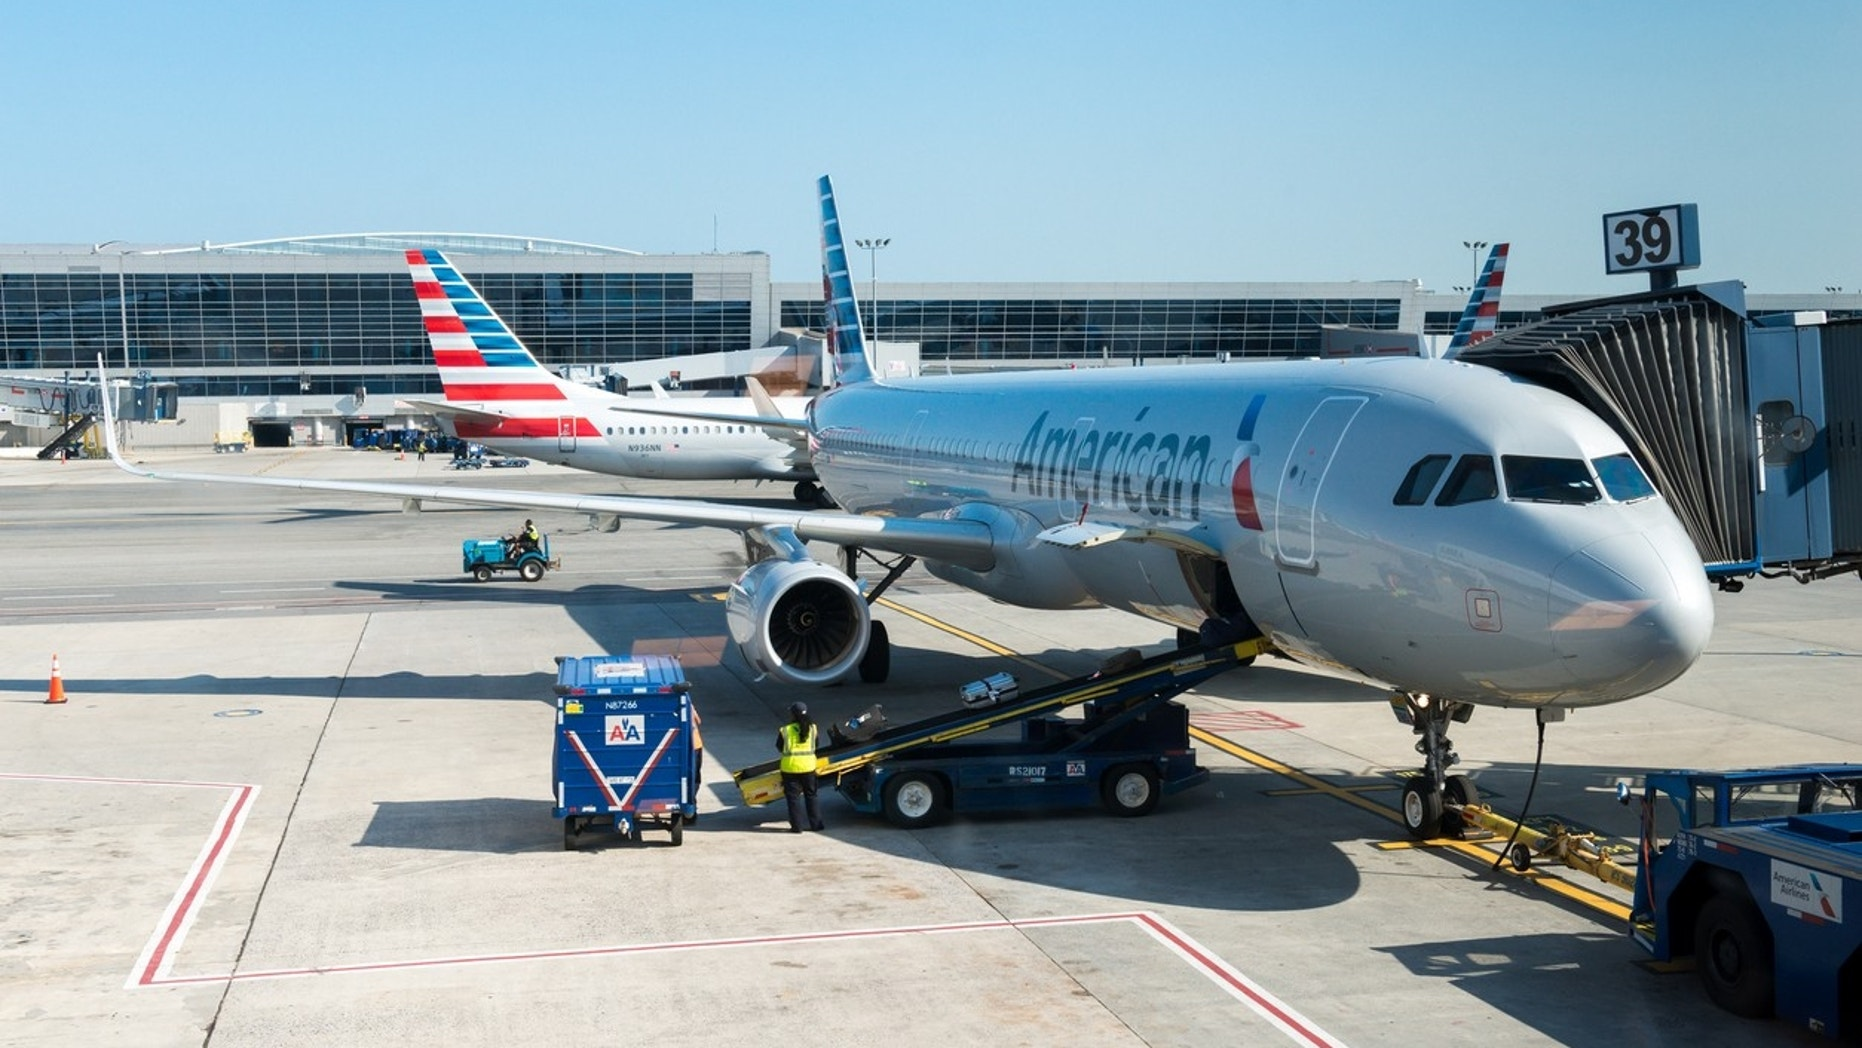 Employees Complain of 'Odor' on American Airlines Plane